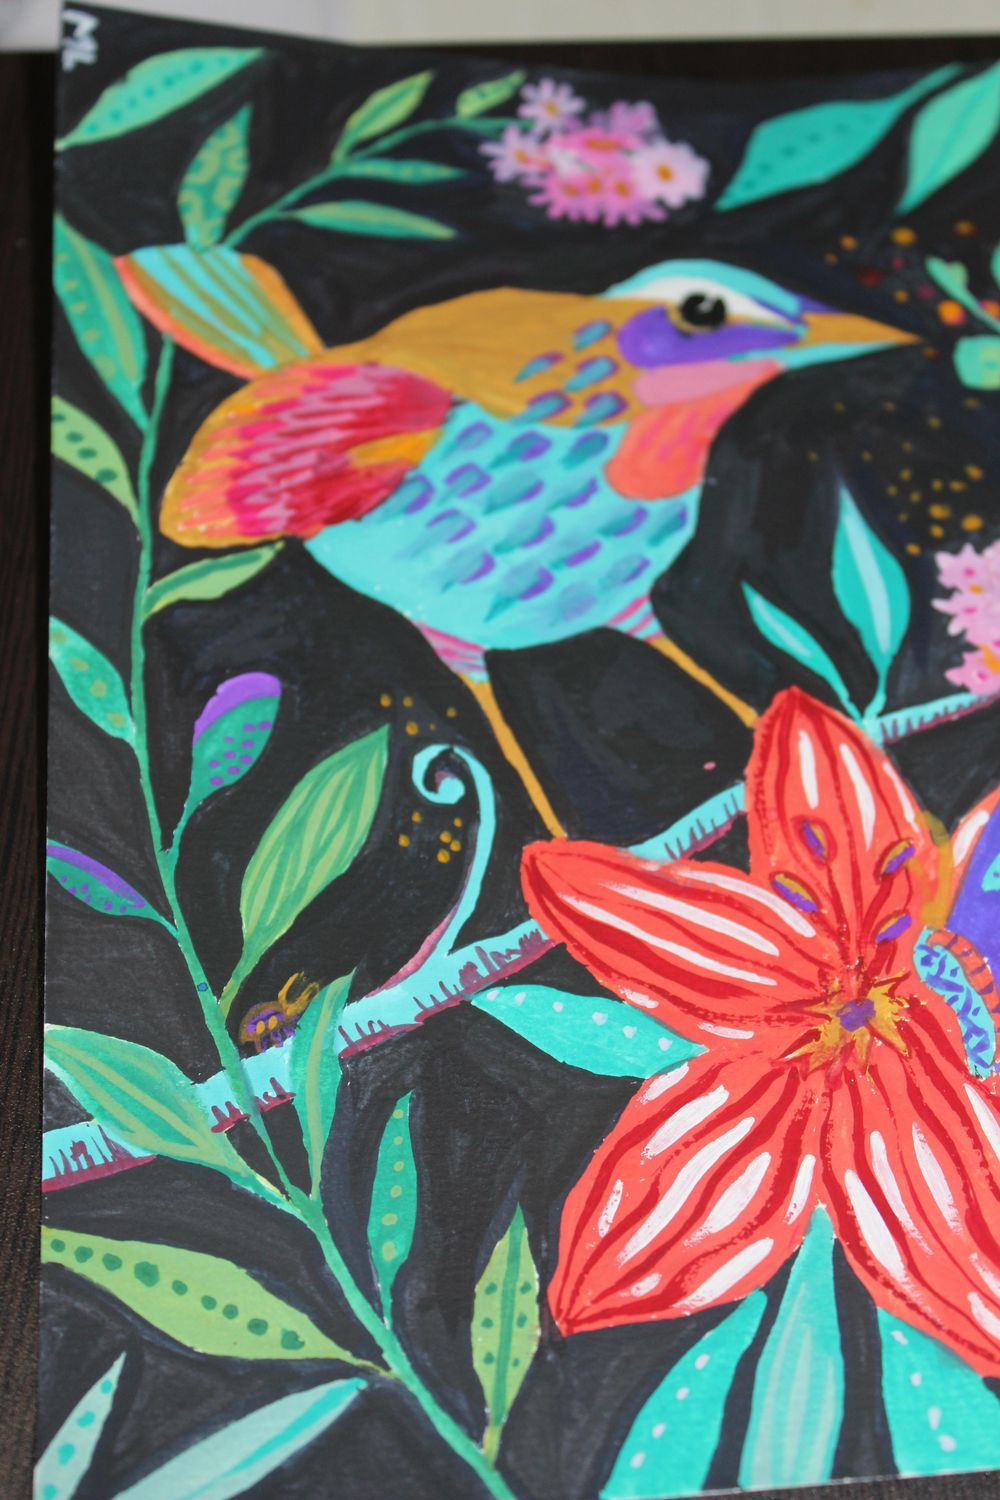 MY FIRST GOUACHE PAINTING. Hope you like it, Kate~ - image 3 - student project